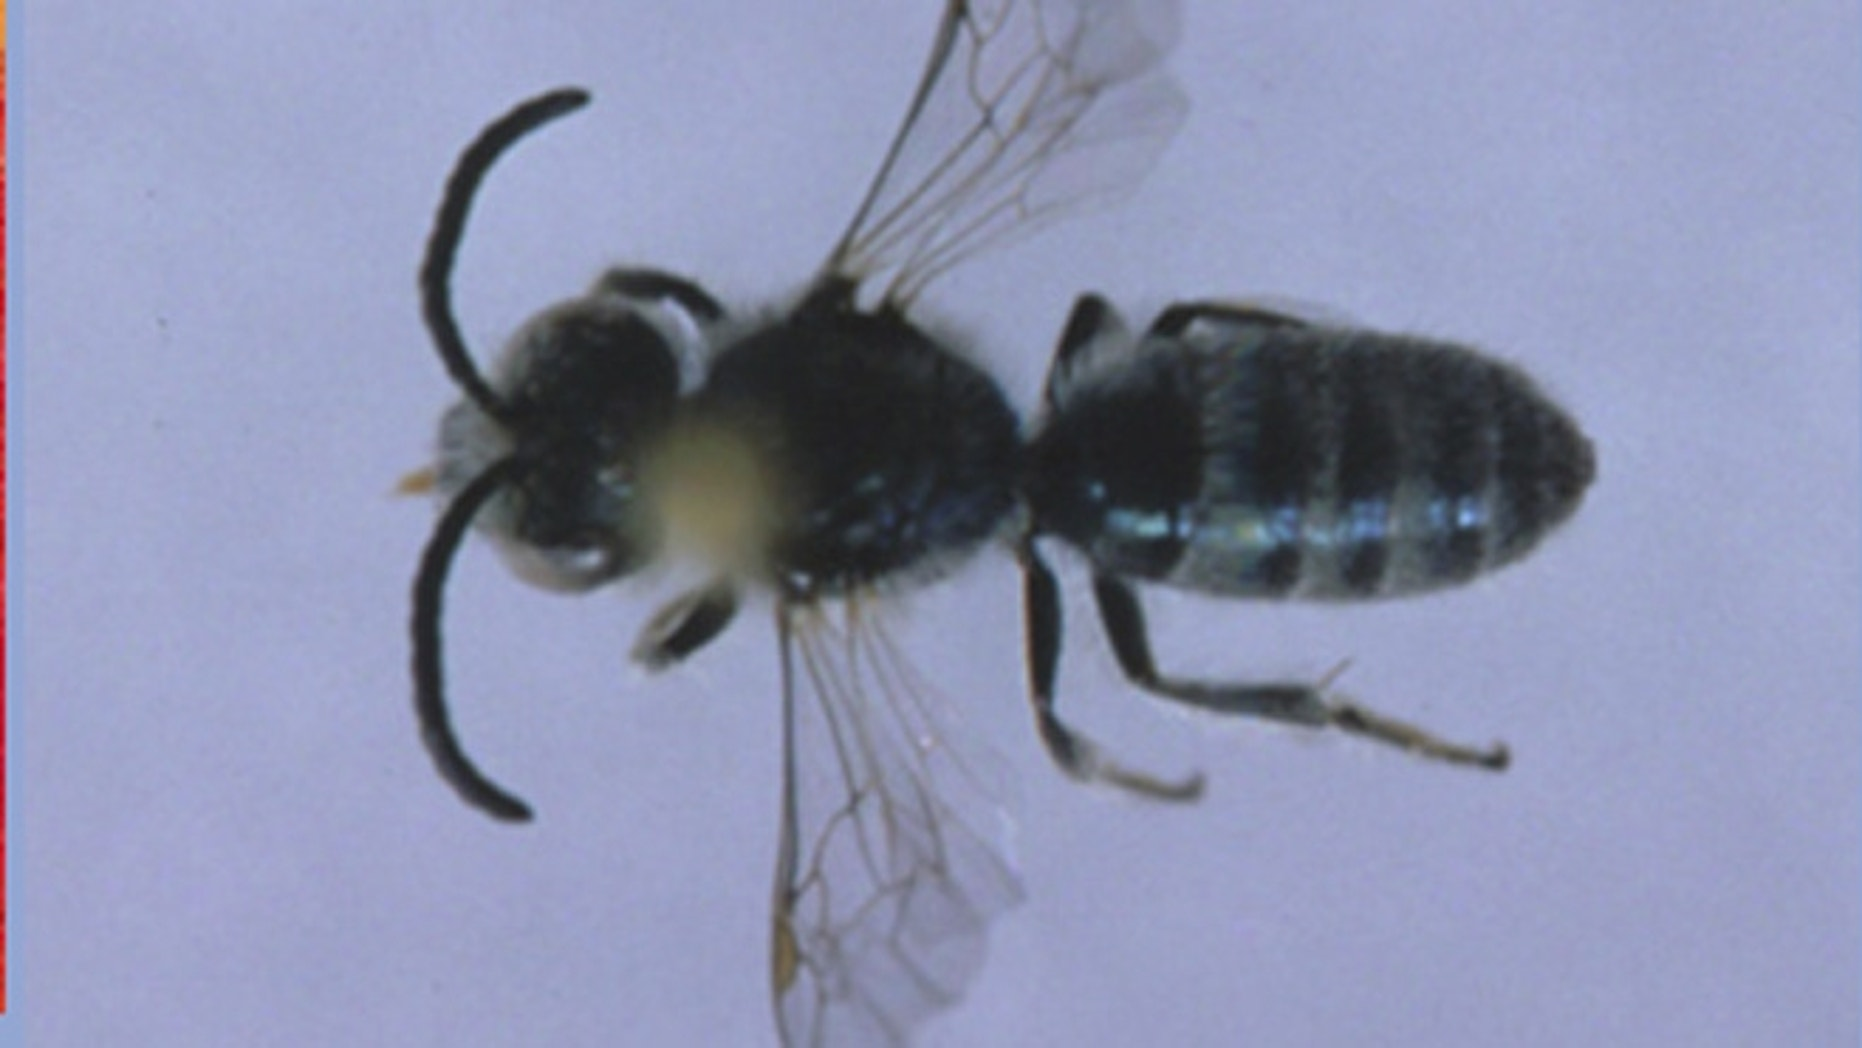 A closeup of a sweat bee, which is the size of a sesame seed.